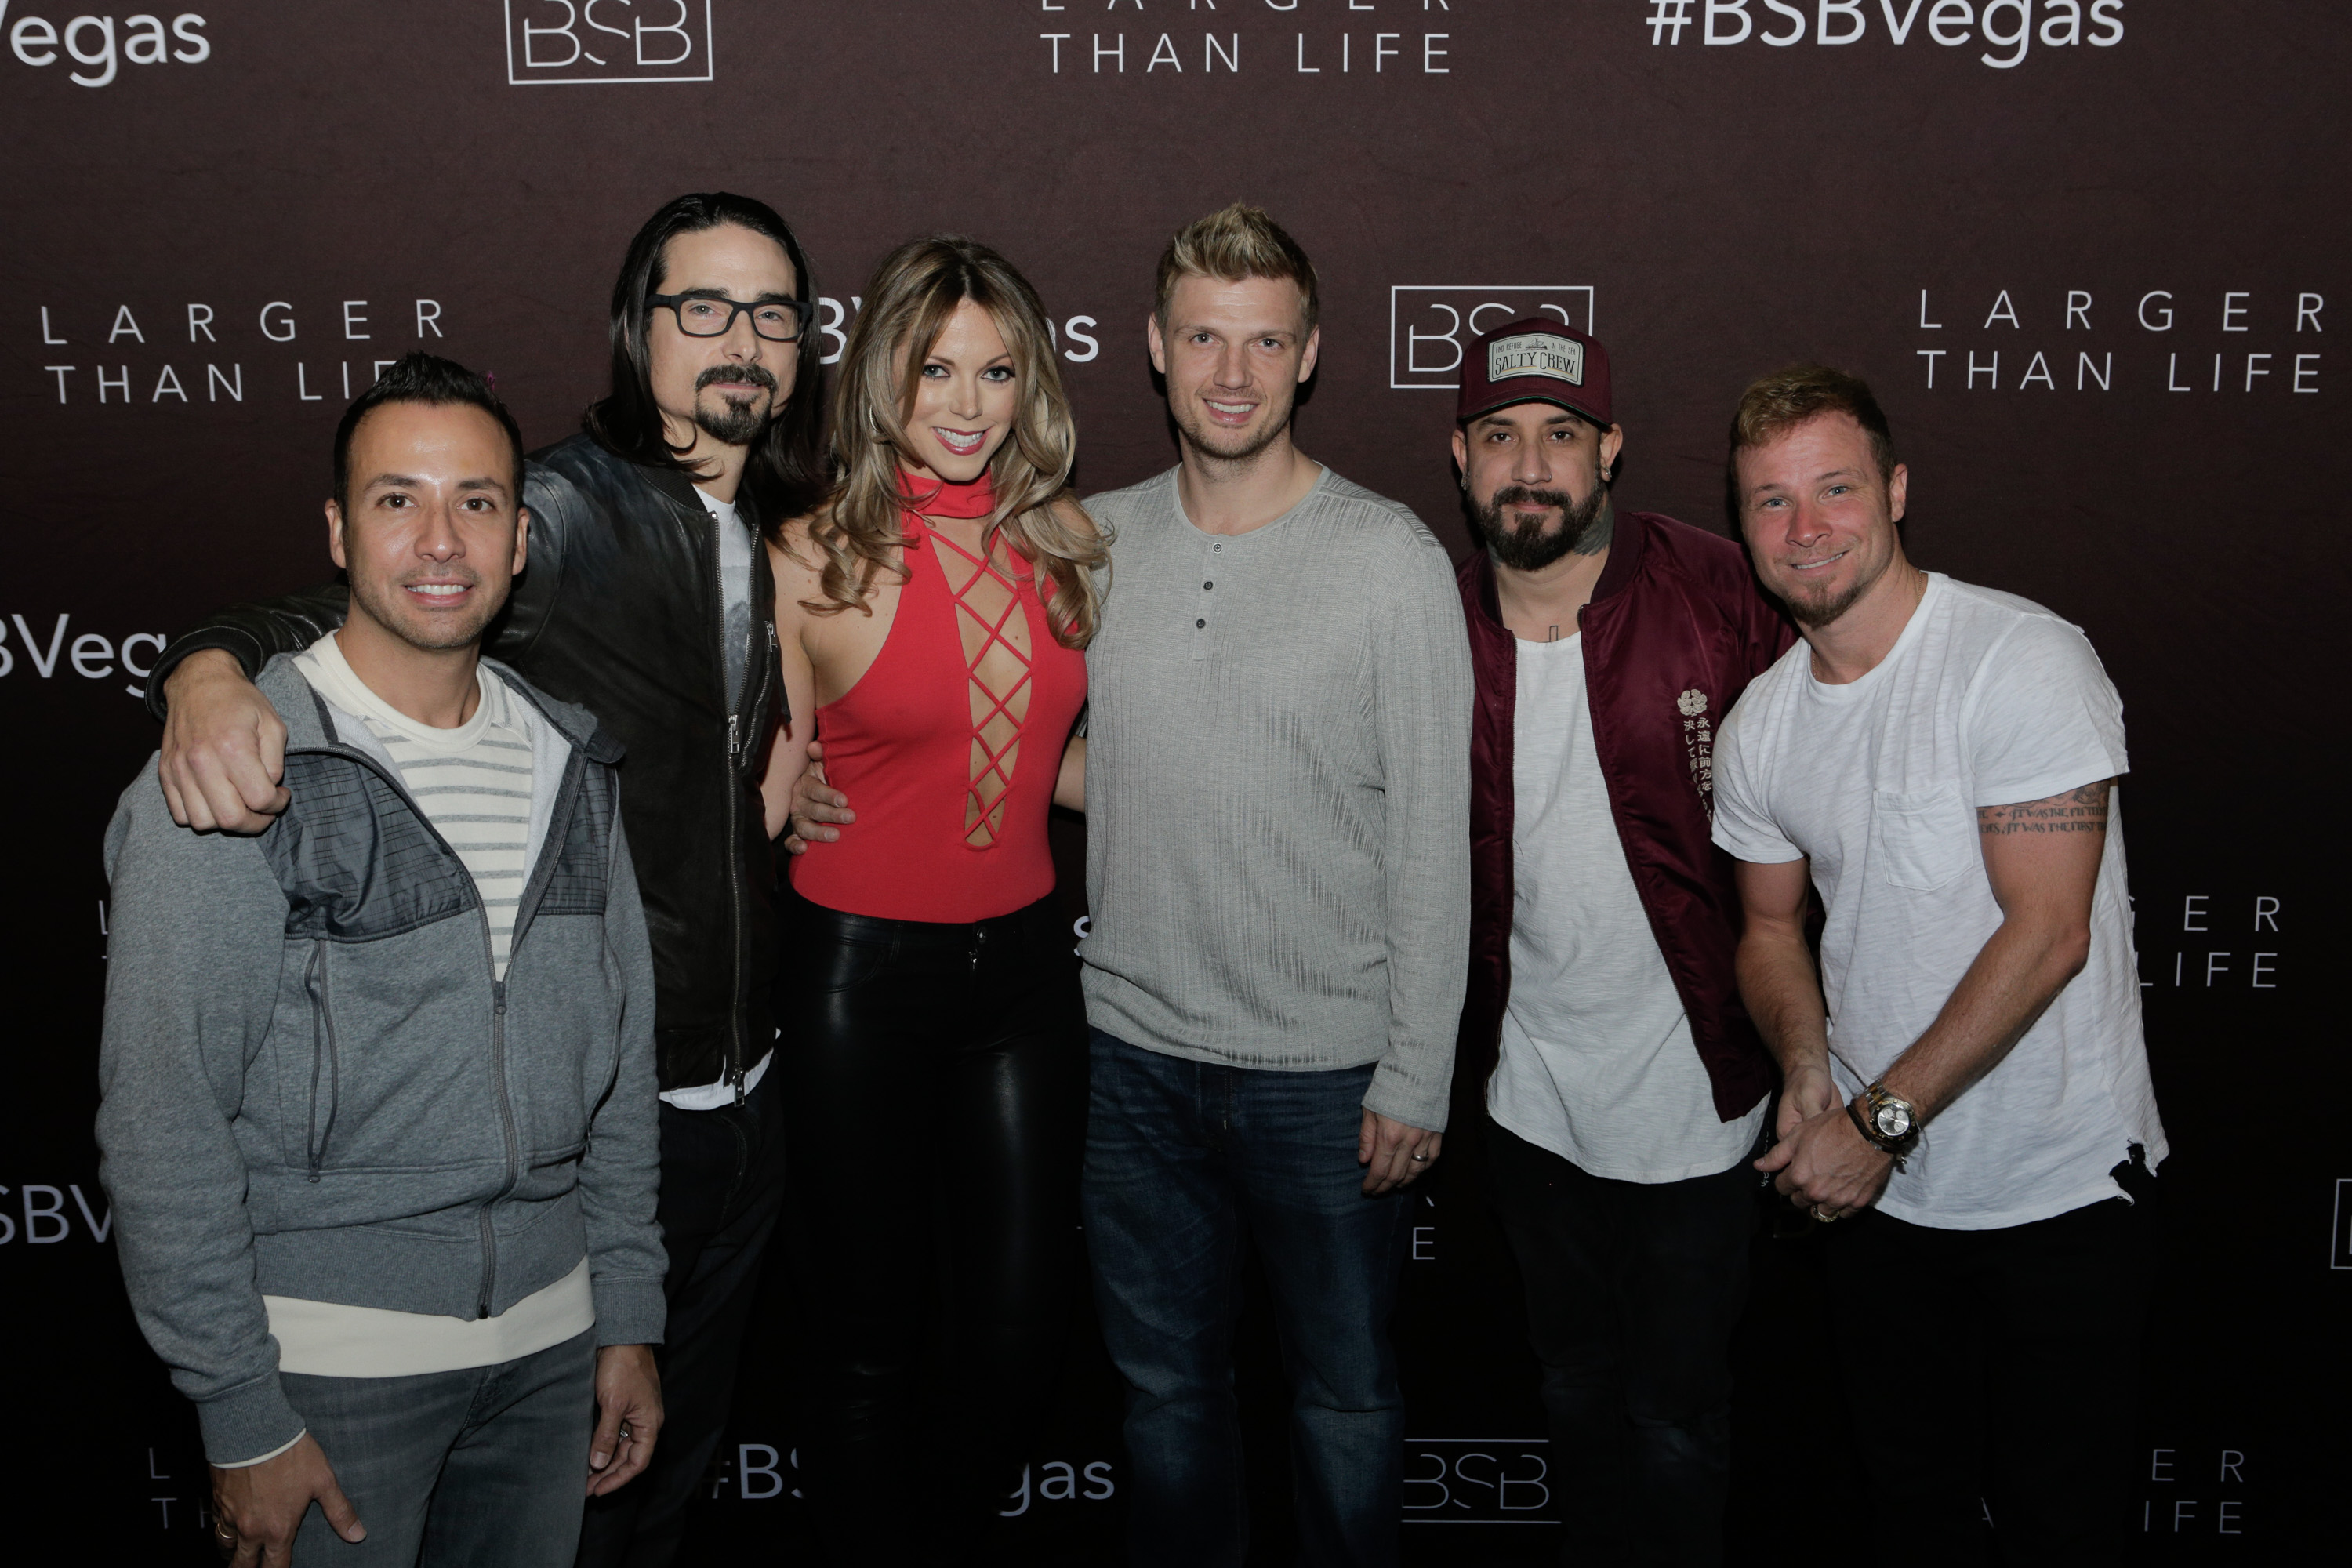 The backstreet boys residency in vegas will make the 15 year old you the backstreet boys residency in vegas will make the 15 year old you swoon spoilers inside lipstick and lunges weight loss service easy healthy m4hsunfo